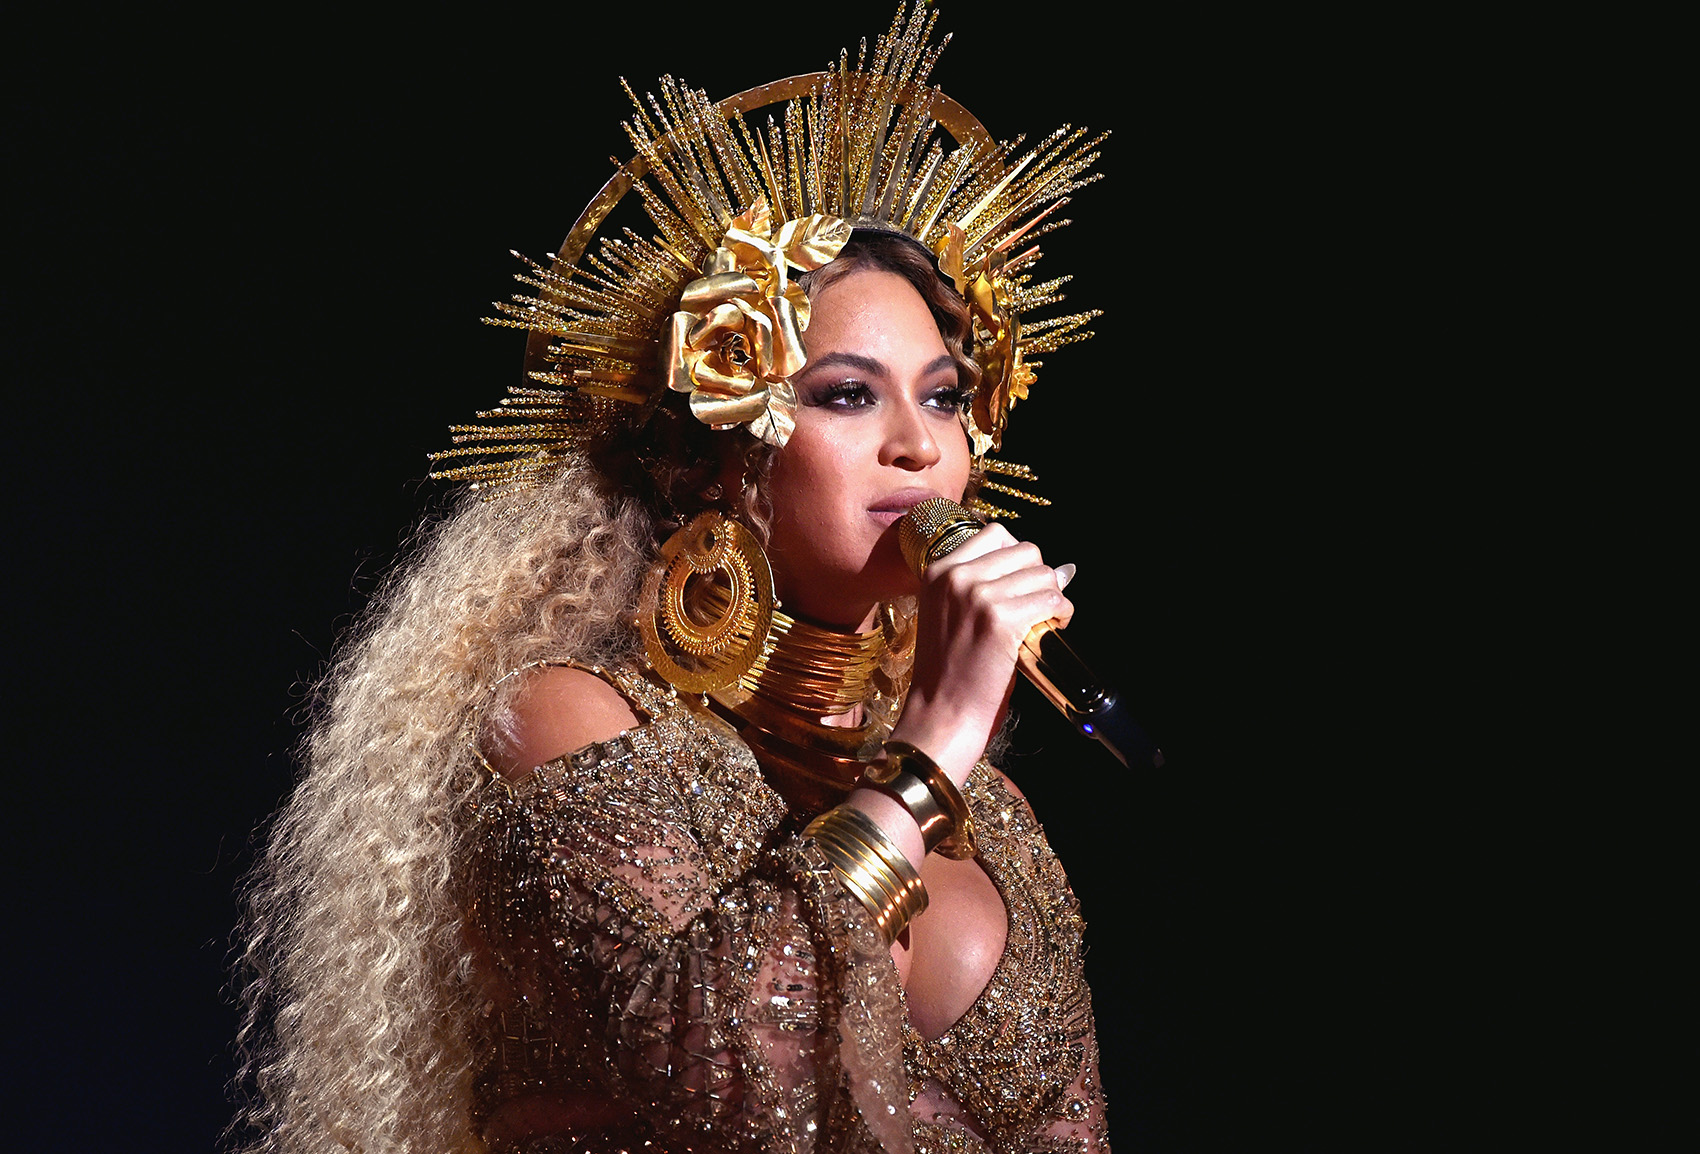 Beyonce at the 59th Grammy Awards Show